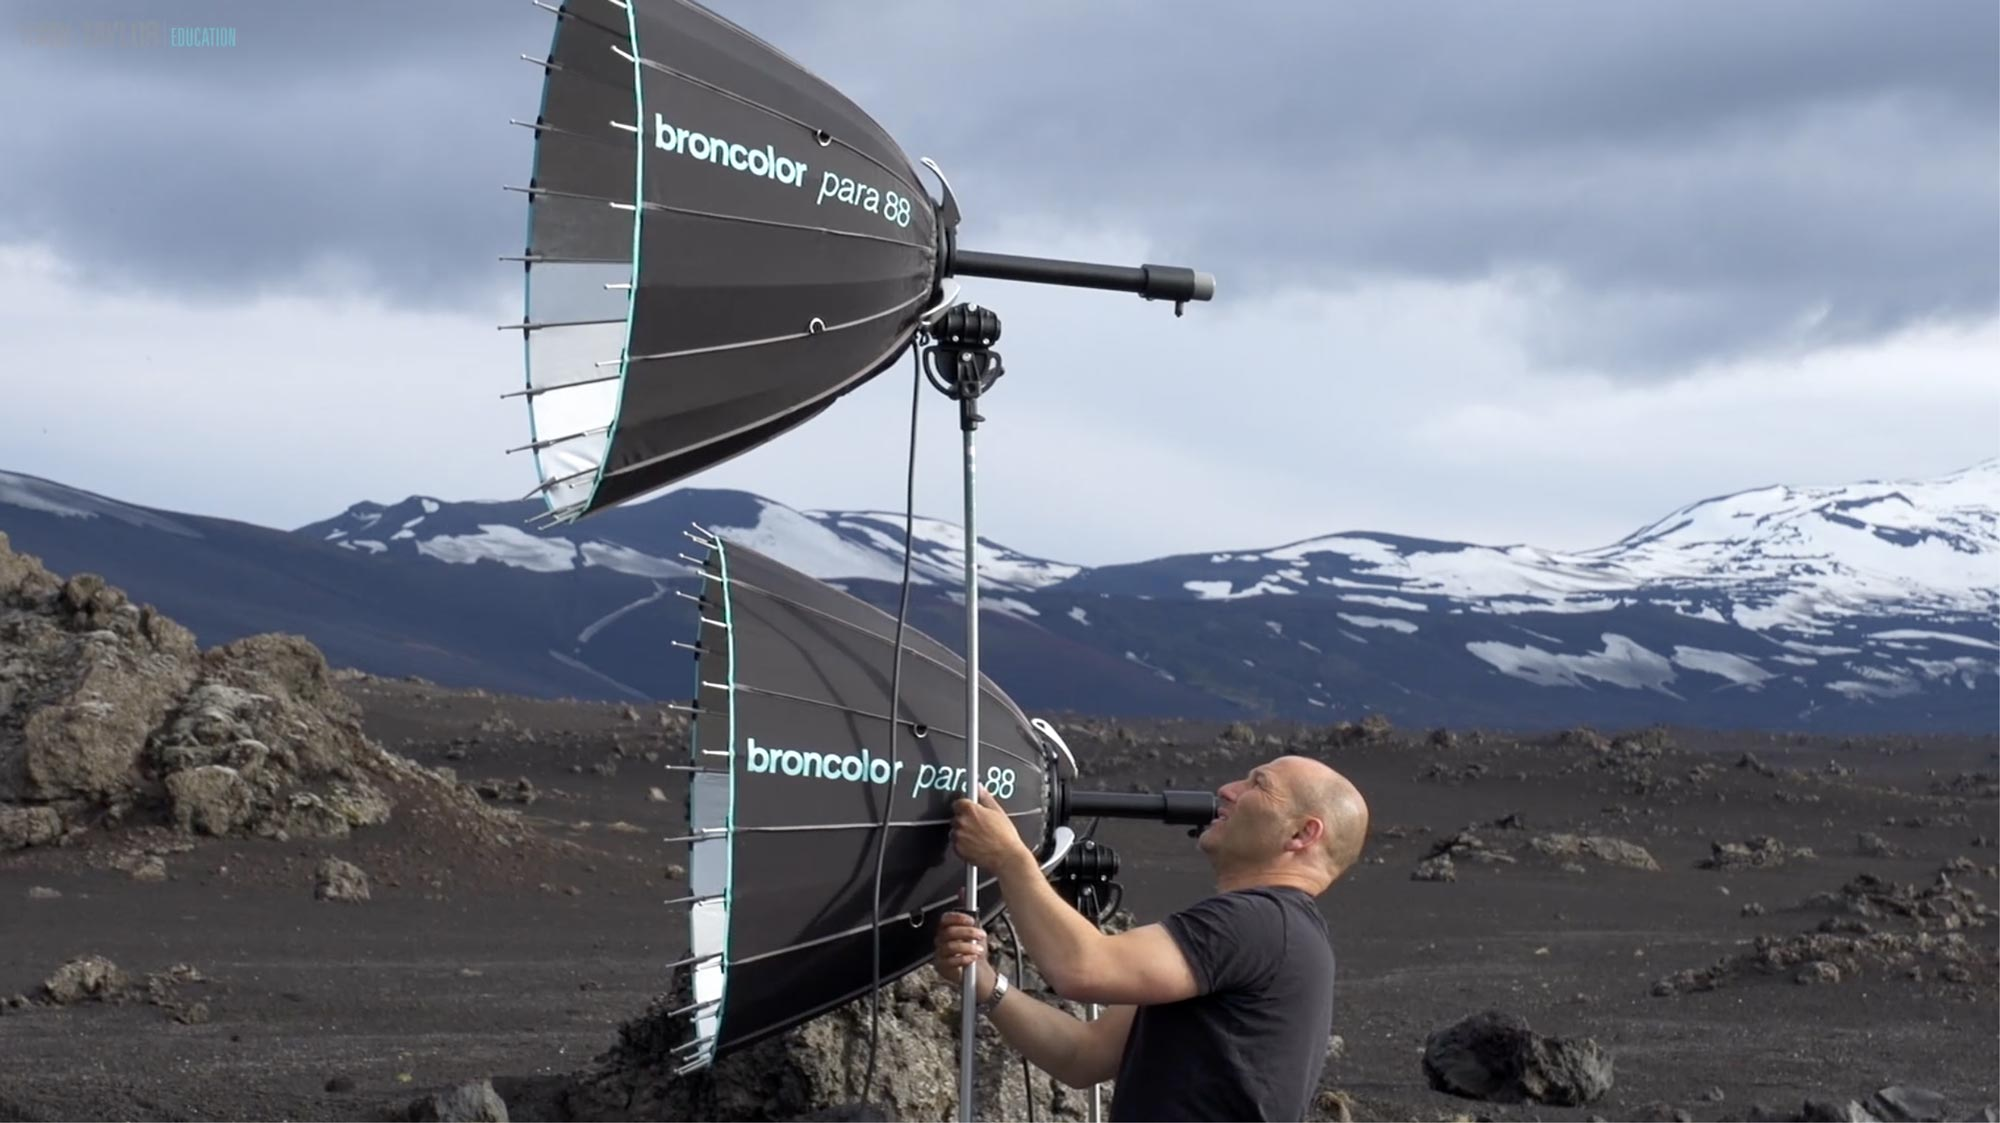 Two Parabolic Lights in Iceland (broncolor para 88s)